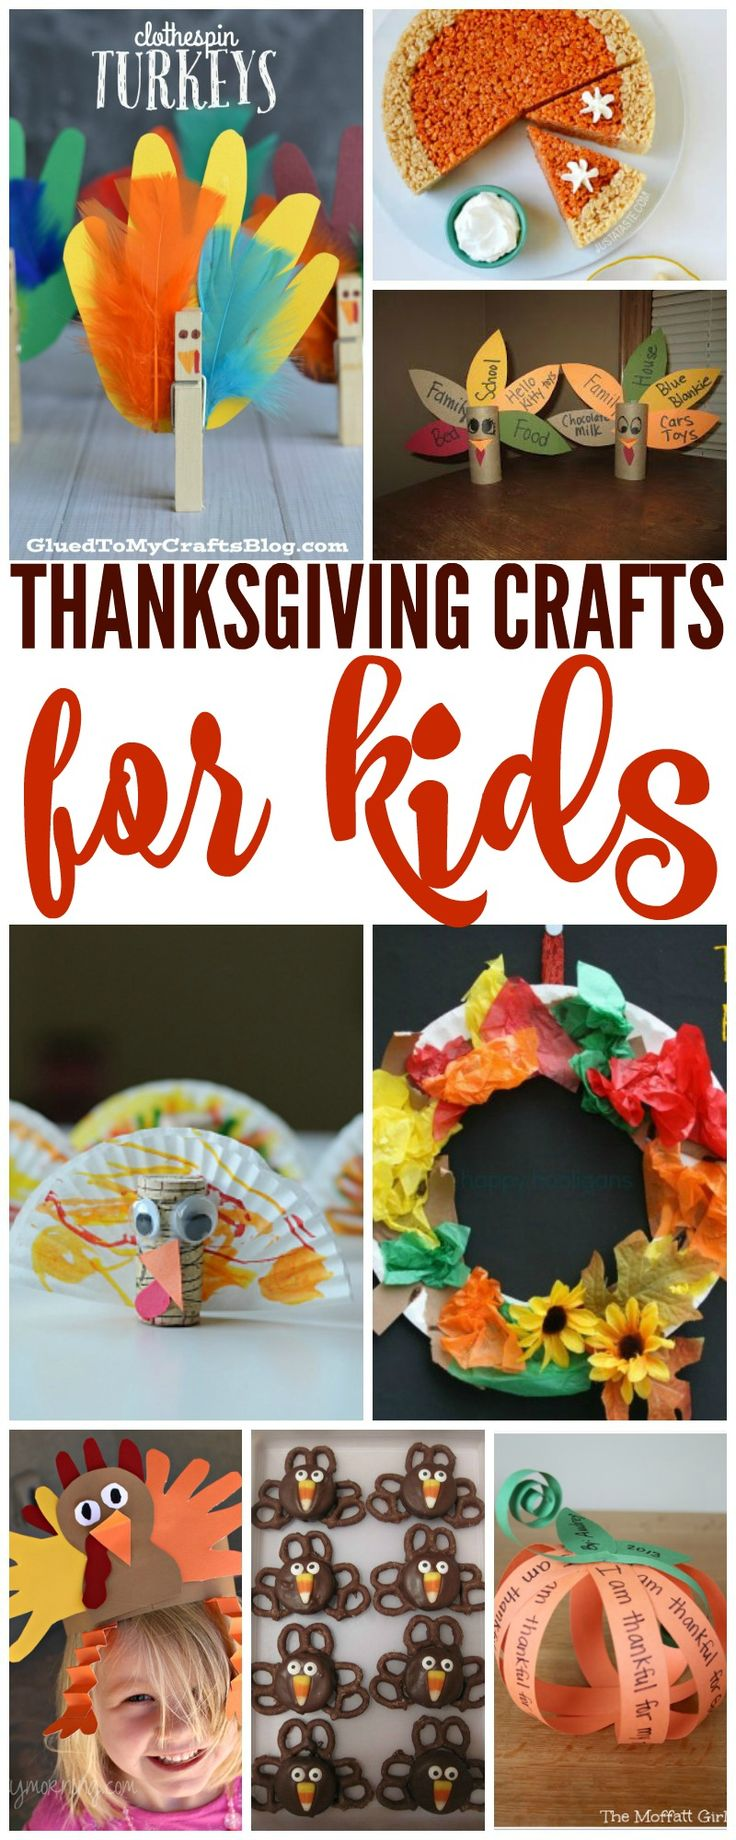 If you are looking for Awesome and Easy Thanksgiving Crafts for Kids, here are some great ideas to help your kids express their thankfulness! via @Passion4Savings